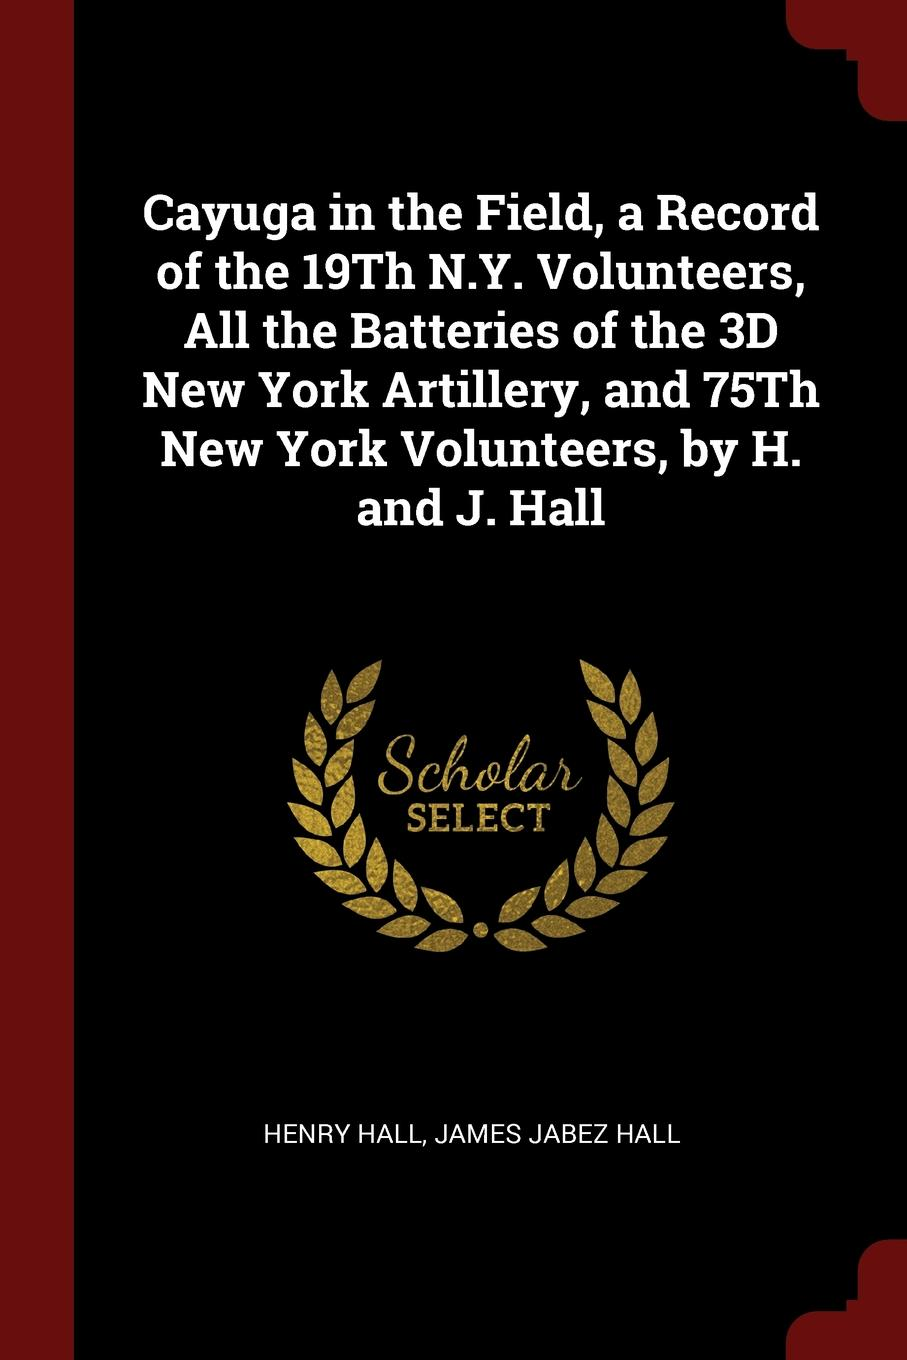 Cayuga in the Field, a Record of the 19Th N.Y. Volunteers, All the Batteries of the 3D New York Artillery, and 75Th New York Volunteers, by H. and J. Hall